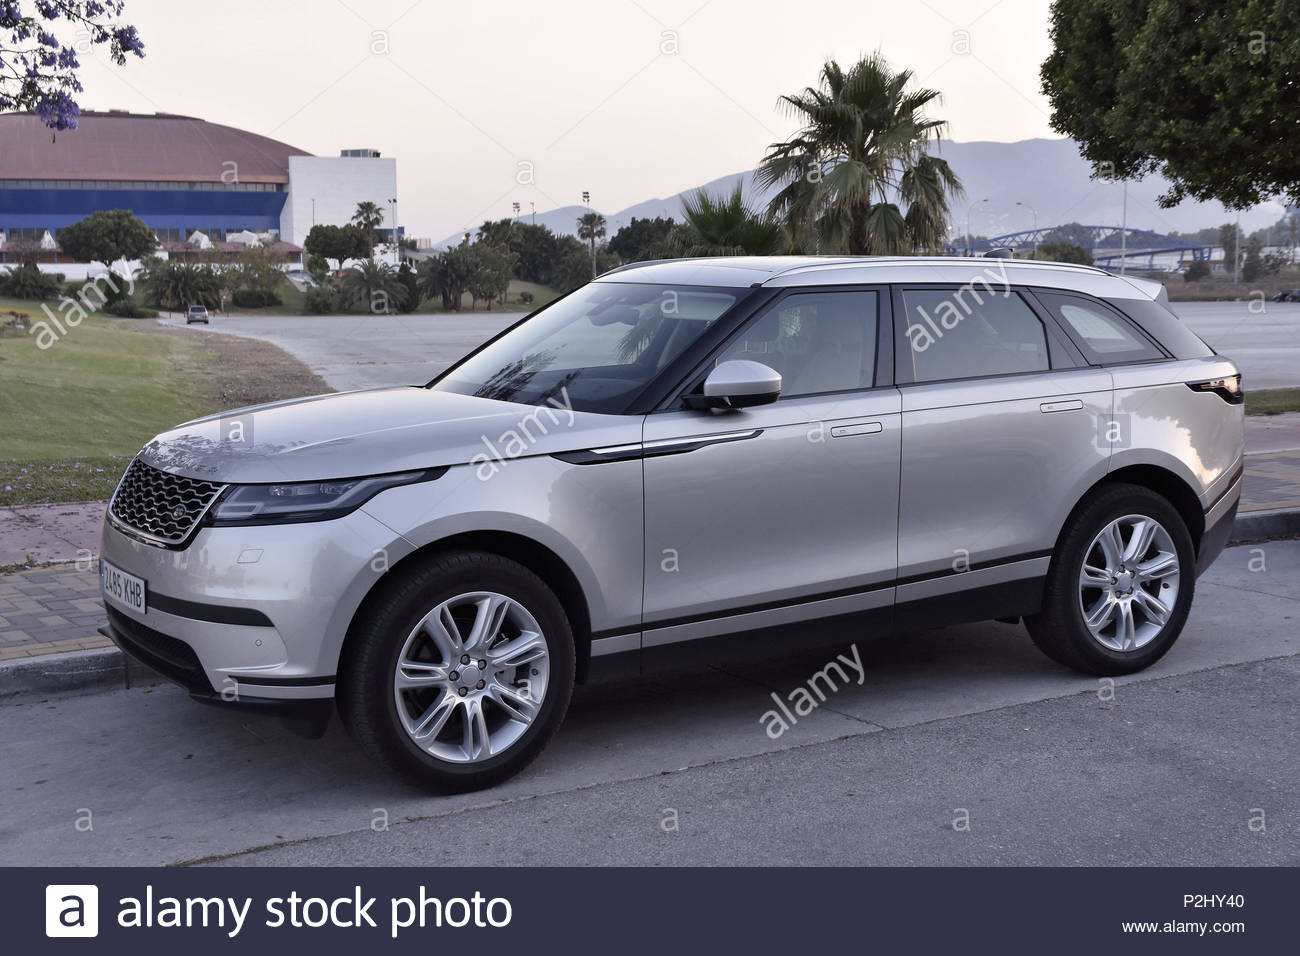 'Range Rover Velar' modern crossover SUV made by 'Jaguar Land Rover' parked in Malaga Southern Spain Europe. - Stock Image